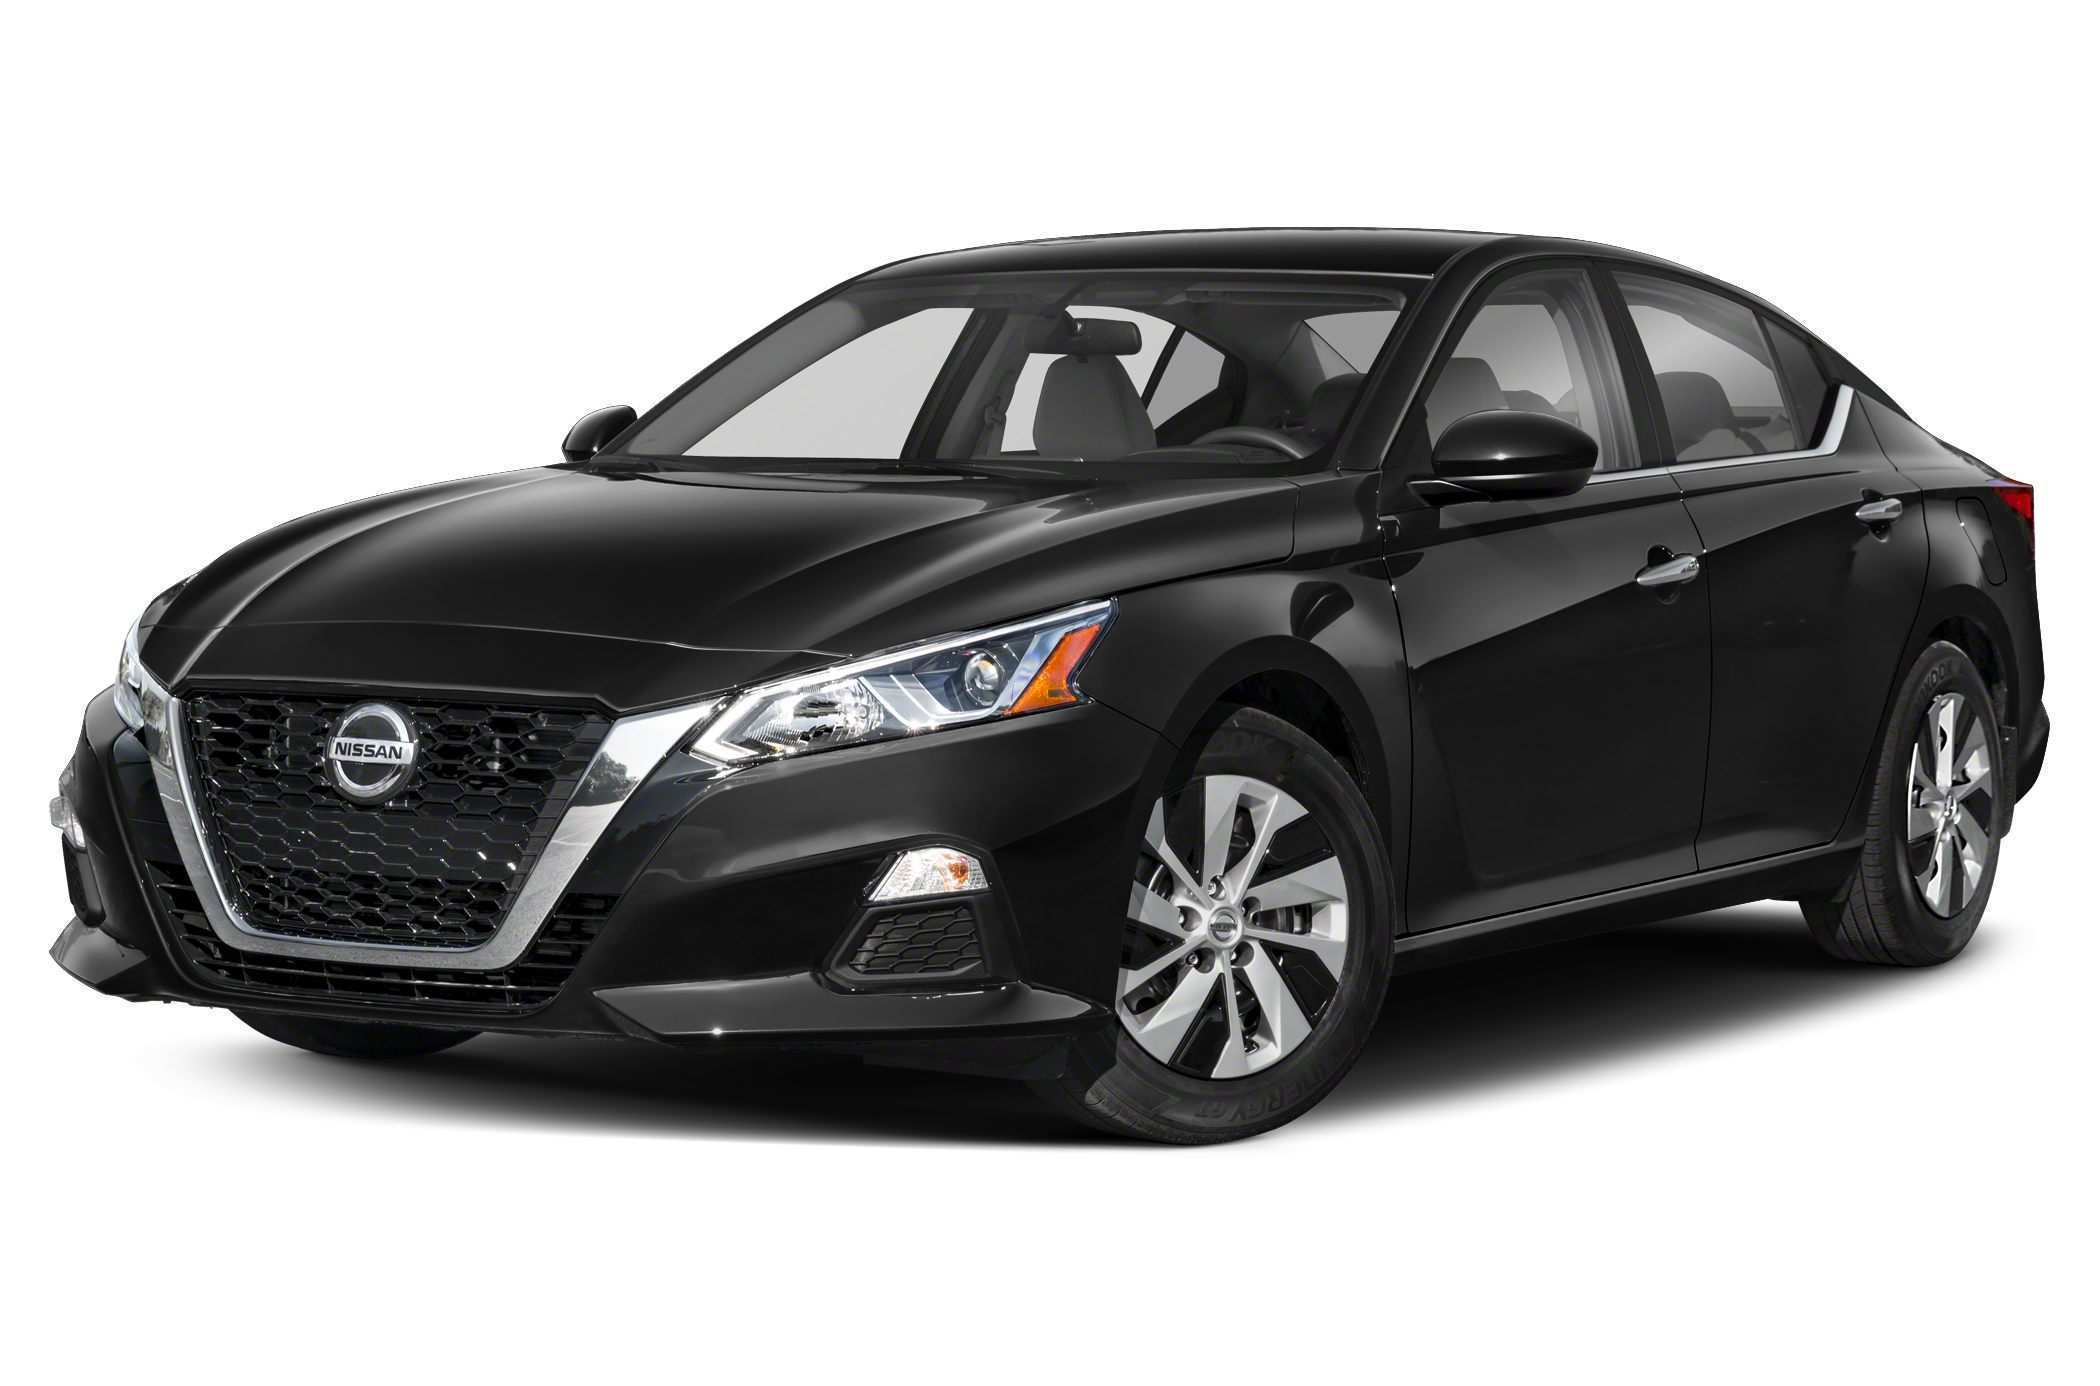 30 New 2019 Nissan Altima Wallpaper